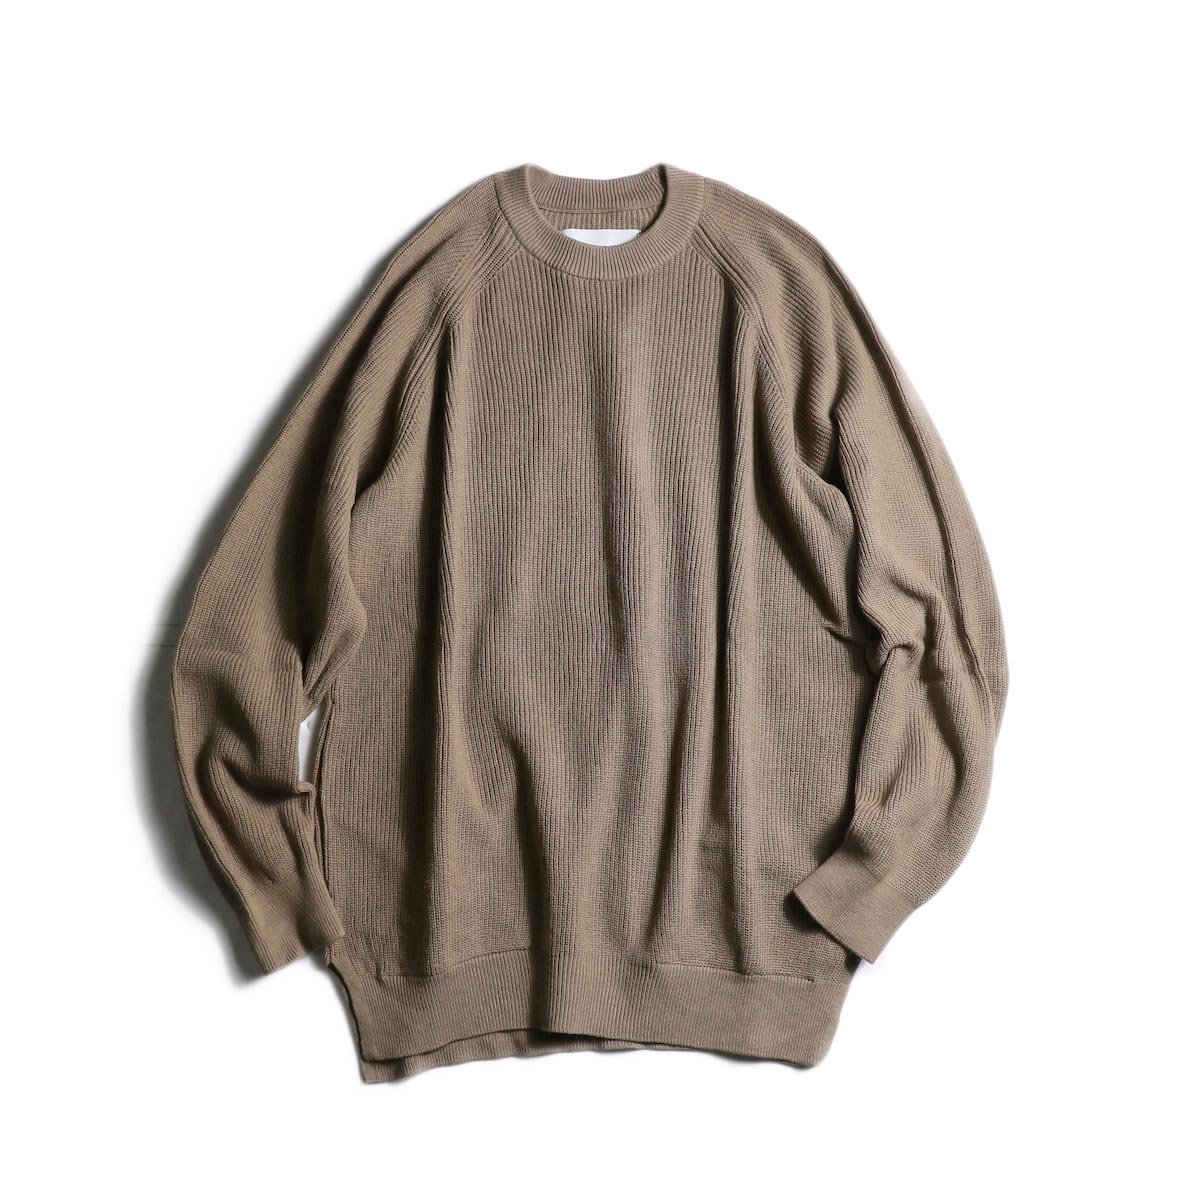 CURLY / ASSEMBLY CREW KNIT (Grege)